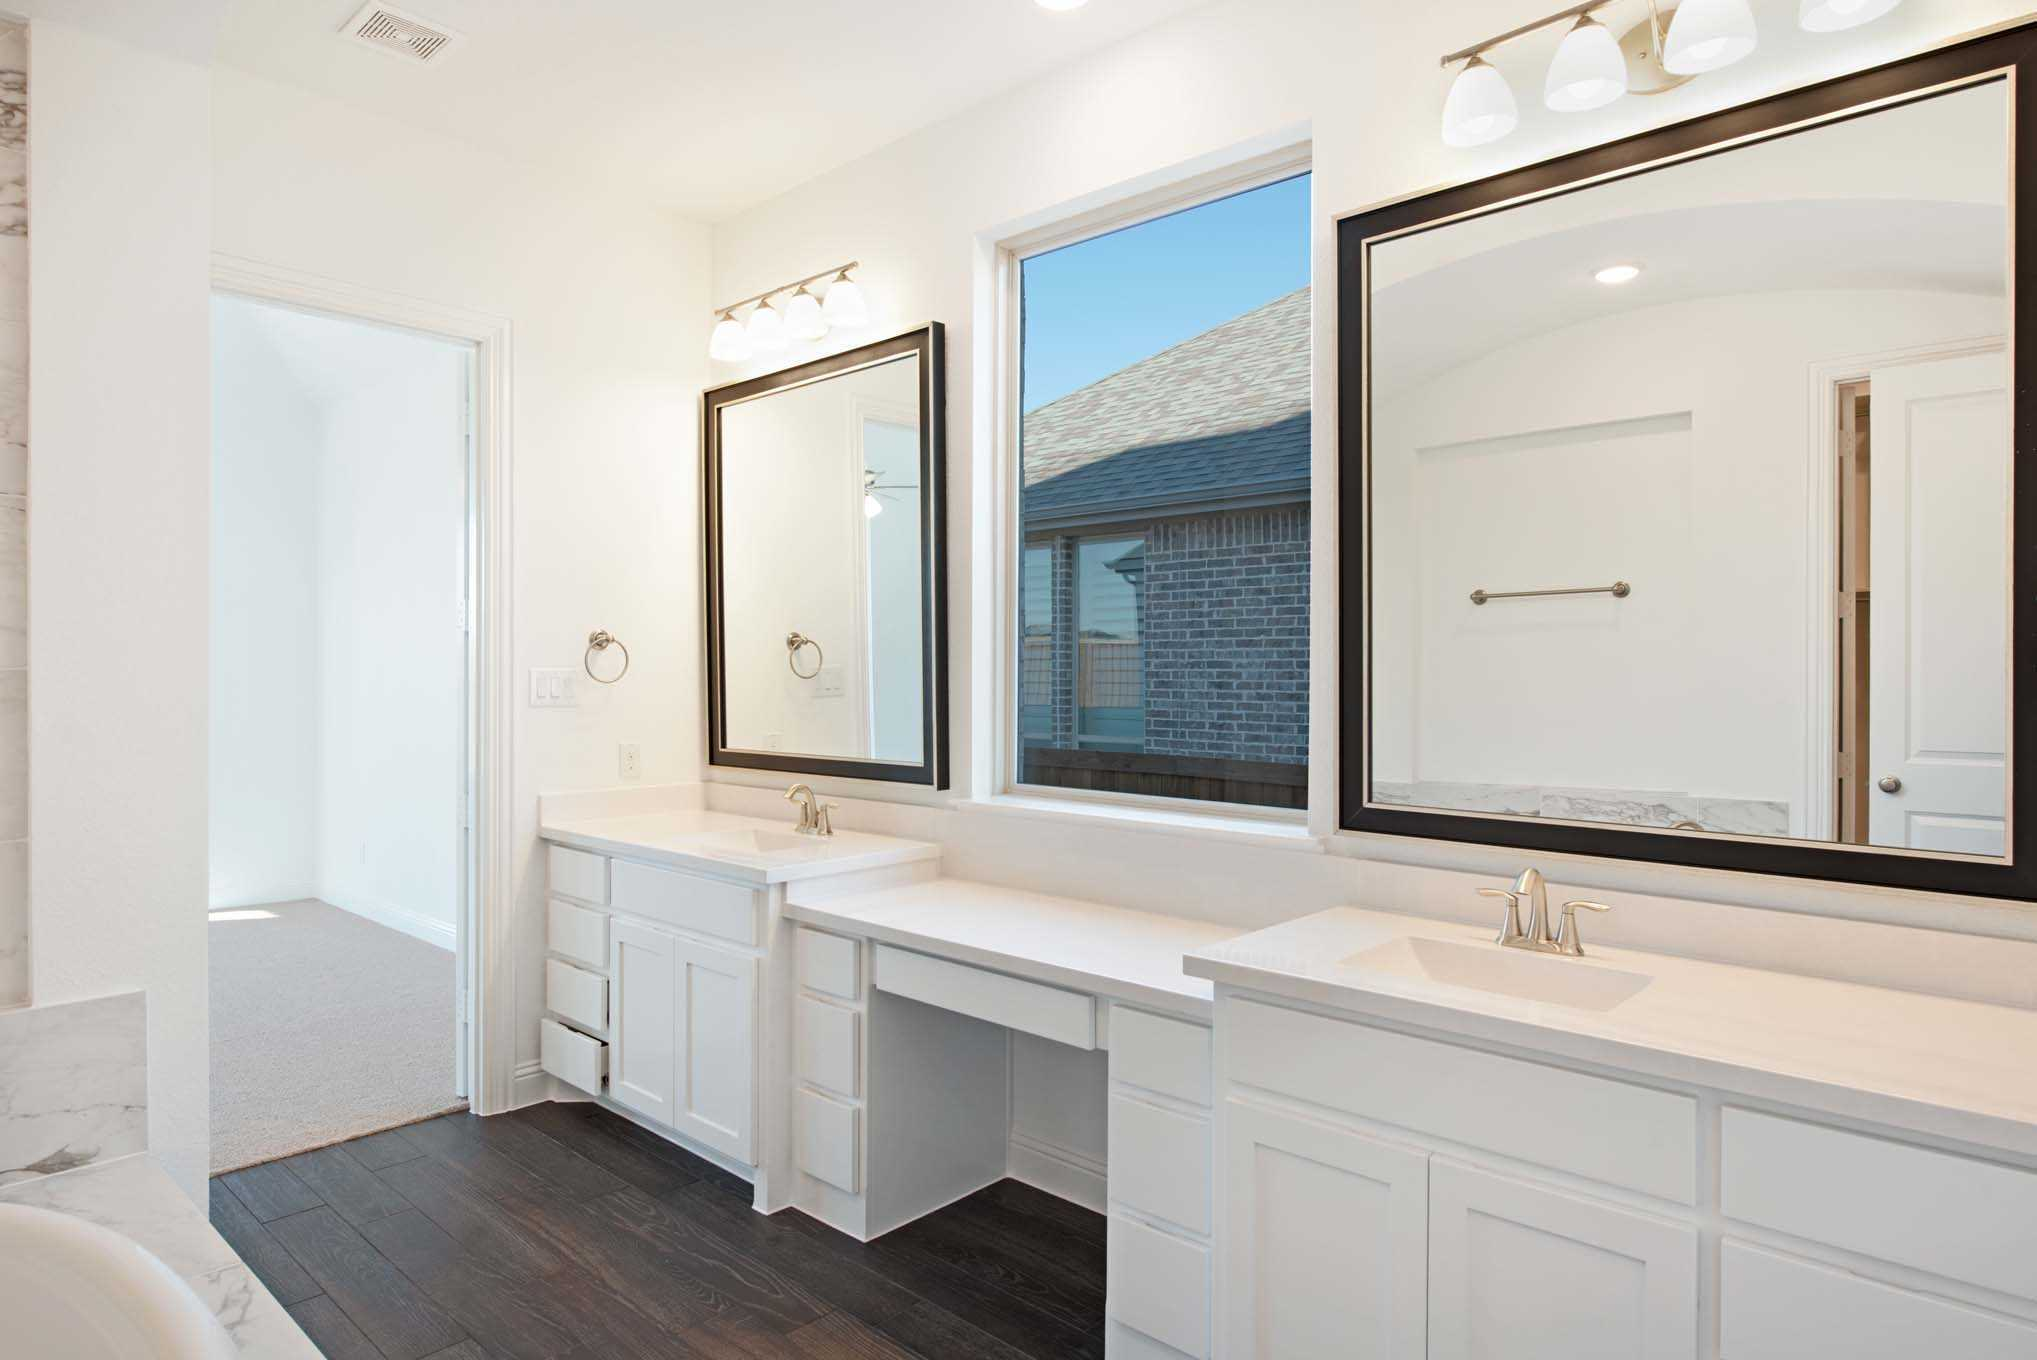 Bathroom featured in the Plan 220 By Highland Homes in San Antonio, TX